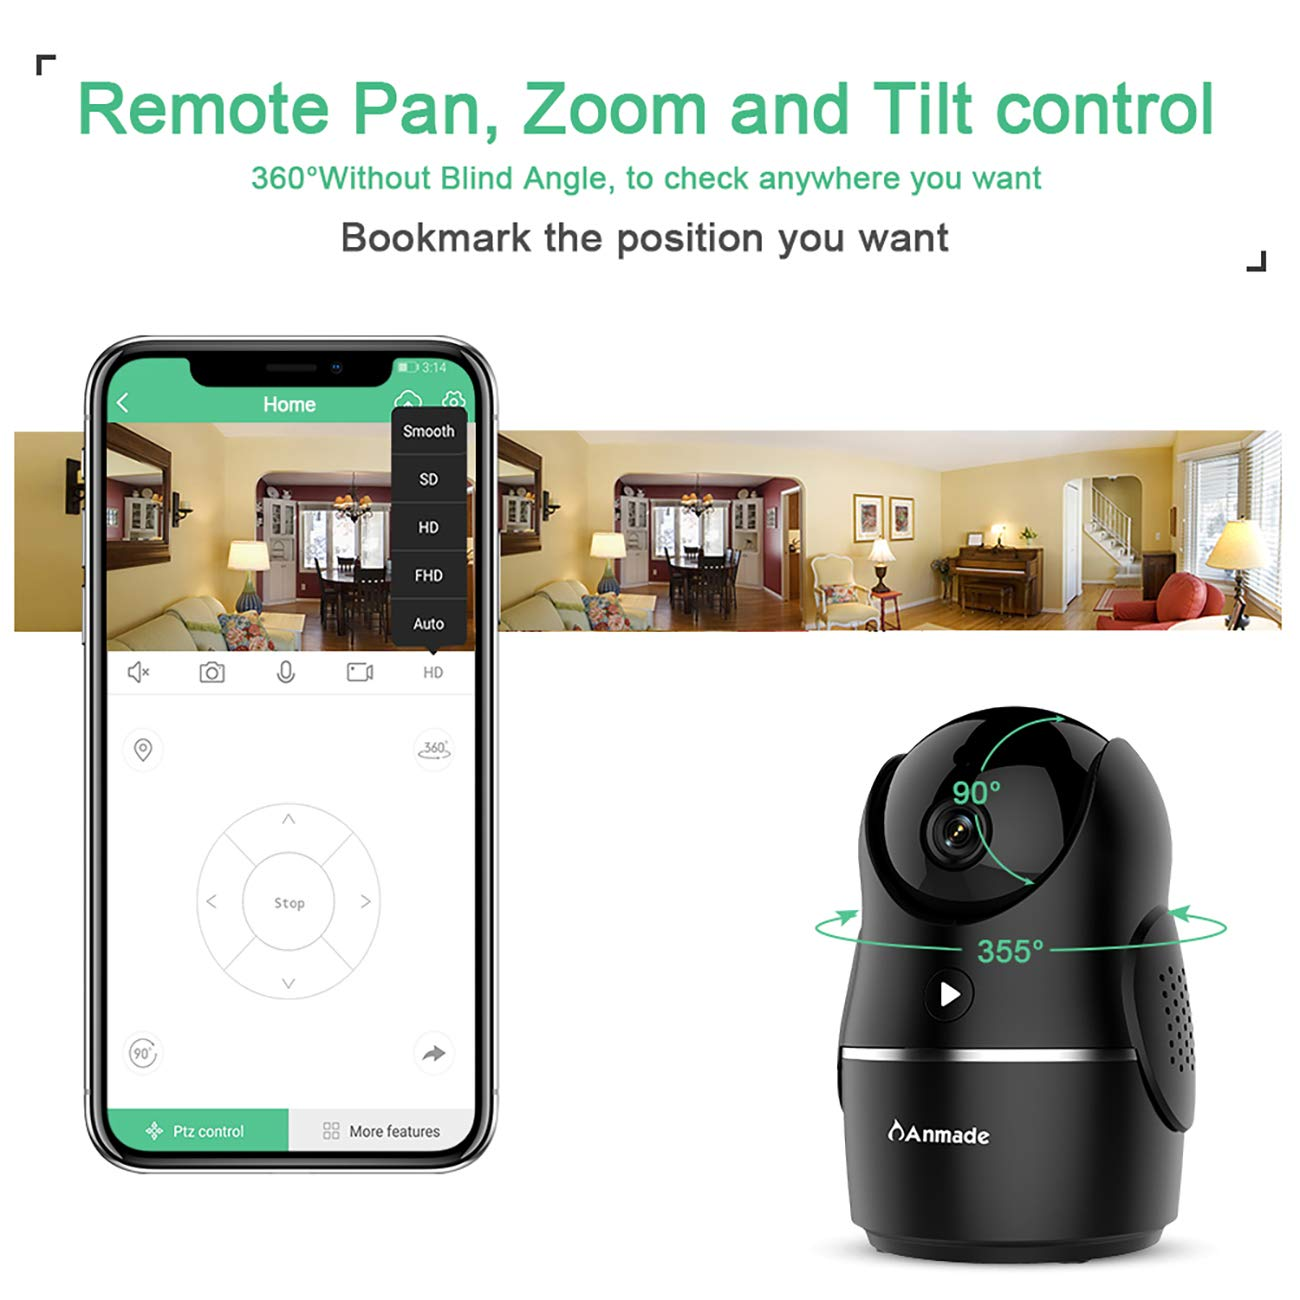 Anmade 1080P Homes Security Camera, Wireless WiFi IP Camera for Home Surveillance with PTZ, Night Vision, 2-Way Audio, Motion Detection, Activity Alerts, 60 Days Free Cloud for Pet/Baby Monitor